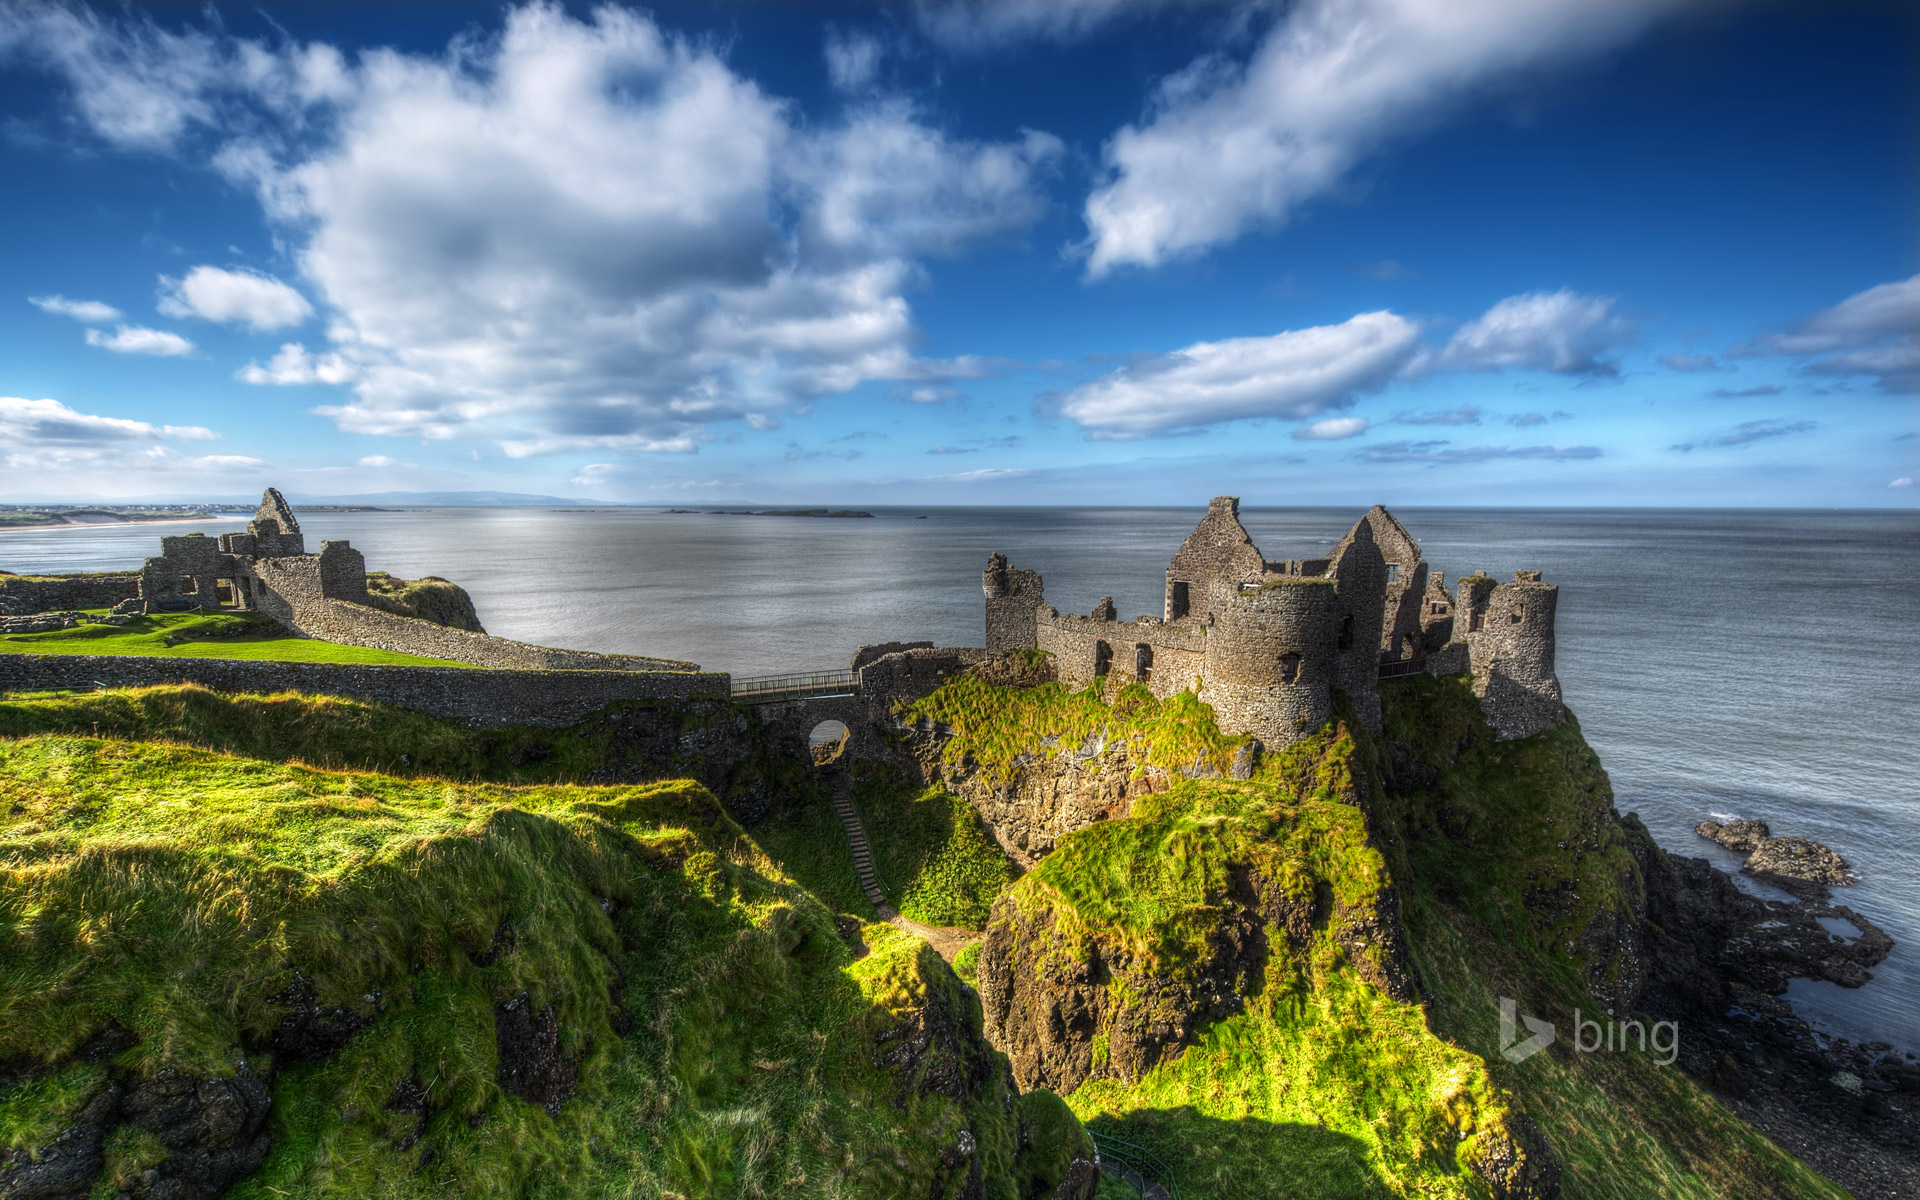 Dunluce Castle County Antrim Northern Ireland Gareth Wray 1920x1200